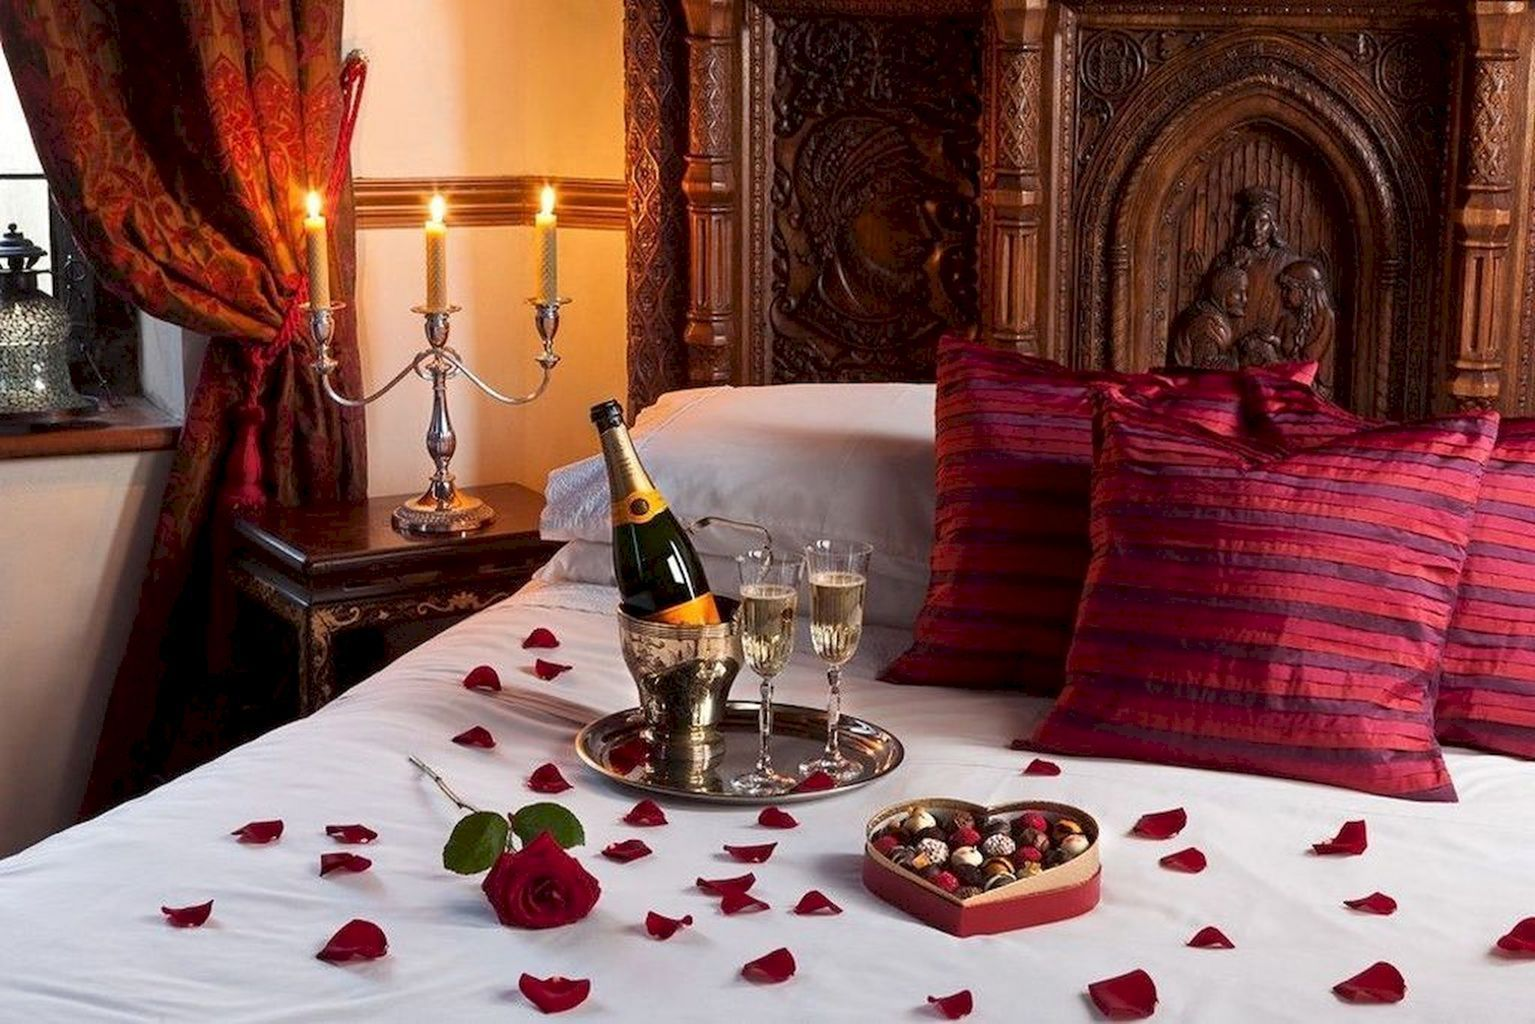 Cool 10+ Romantic Bedroom Ideas On Valentine's Day For Your Special Moments 10+ ... - Cool 10+ Romantic Bedroom Ideas On Valentine's Day For Your Special Moments 10+ …  Cool 10+ Romantic Bedroom Ideas On Valentine's Day For Your Special Moments 10+ romantic bedroom  #Bedroom #cool #Day #Ideas  Informations About Cool 10+ Romantic Bedroom Ideas On Valentine's Day For Your Special Moments 10+ … Pin You can easily use my profile to examine different pin types. Cool 10+ Romantic Bedroom Ideas On Va